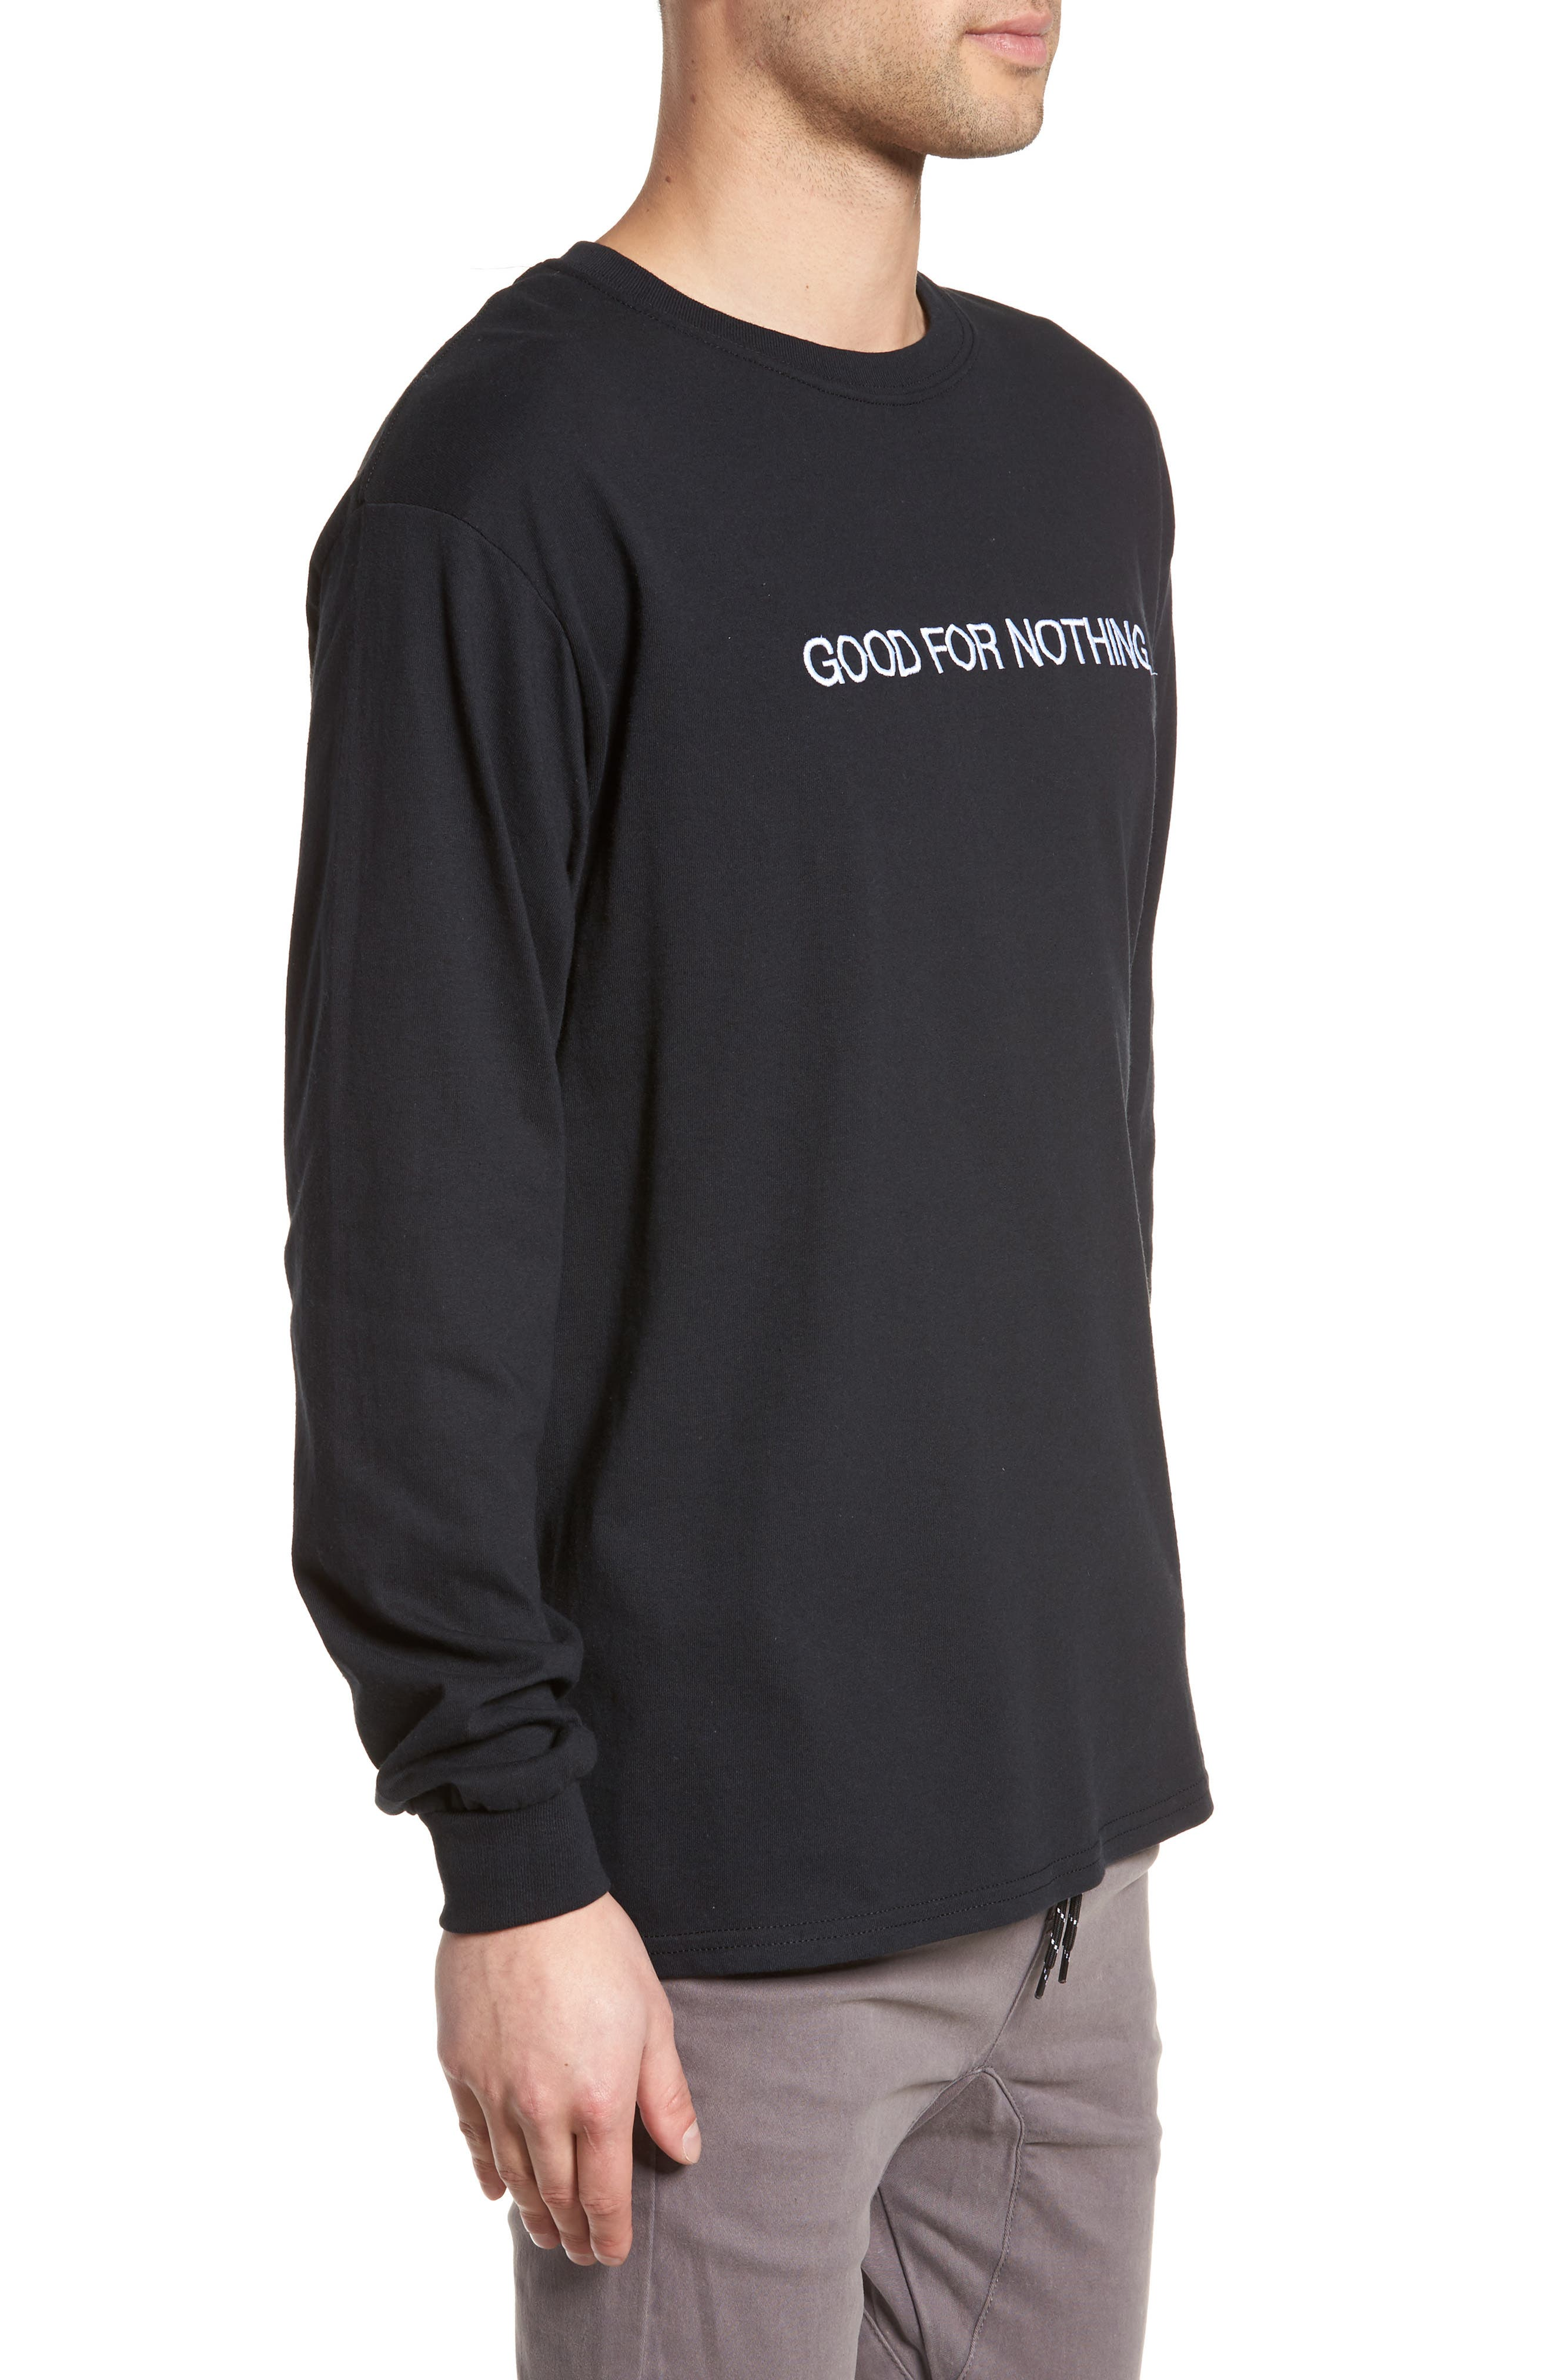 Good for Nothing Embroidered T-Shirt,                             Alternate thumbnail 3, color,                             001